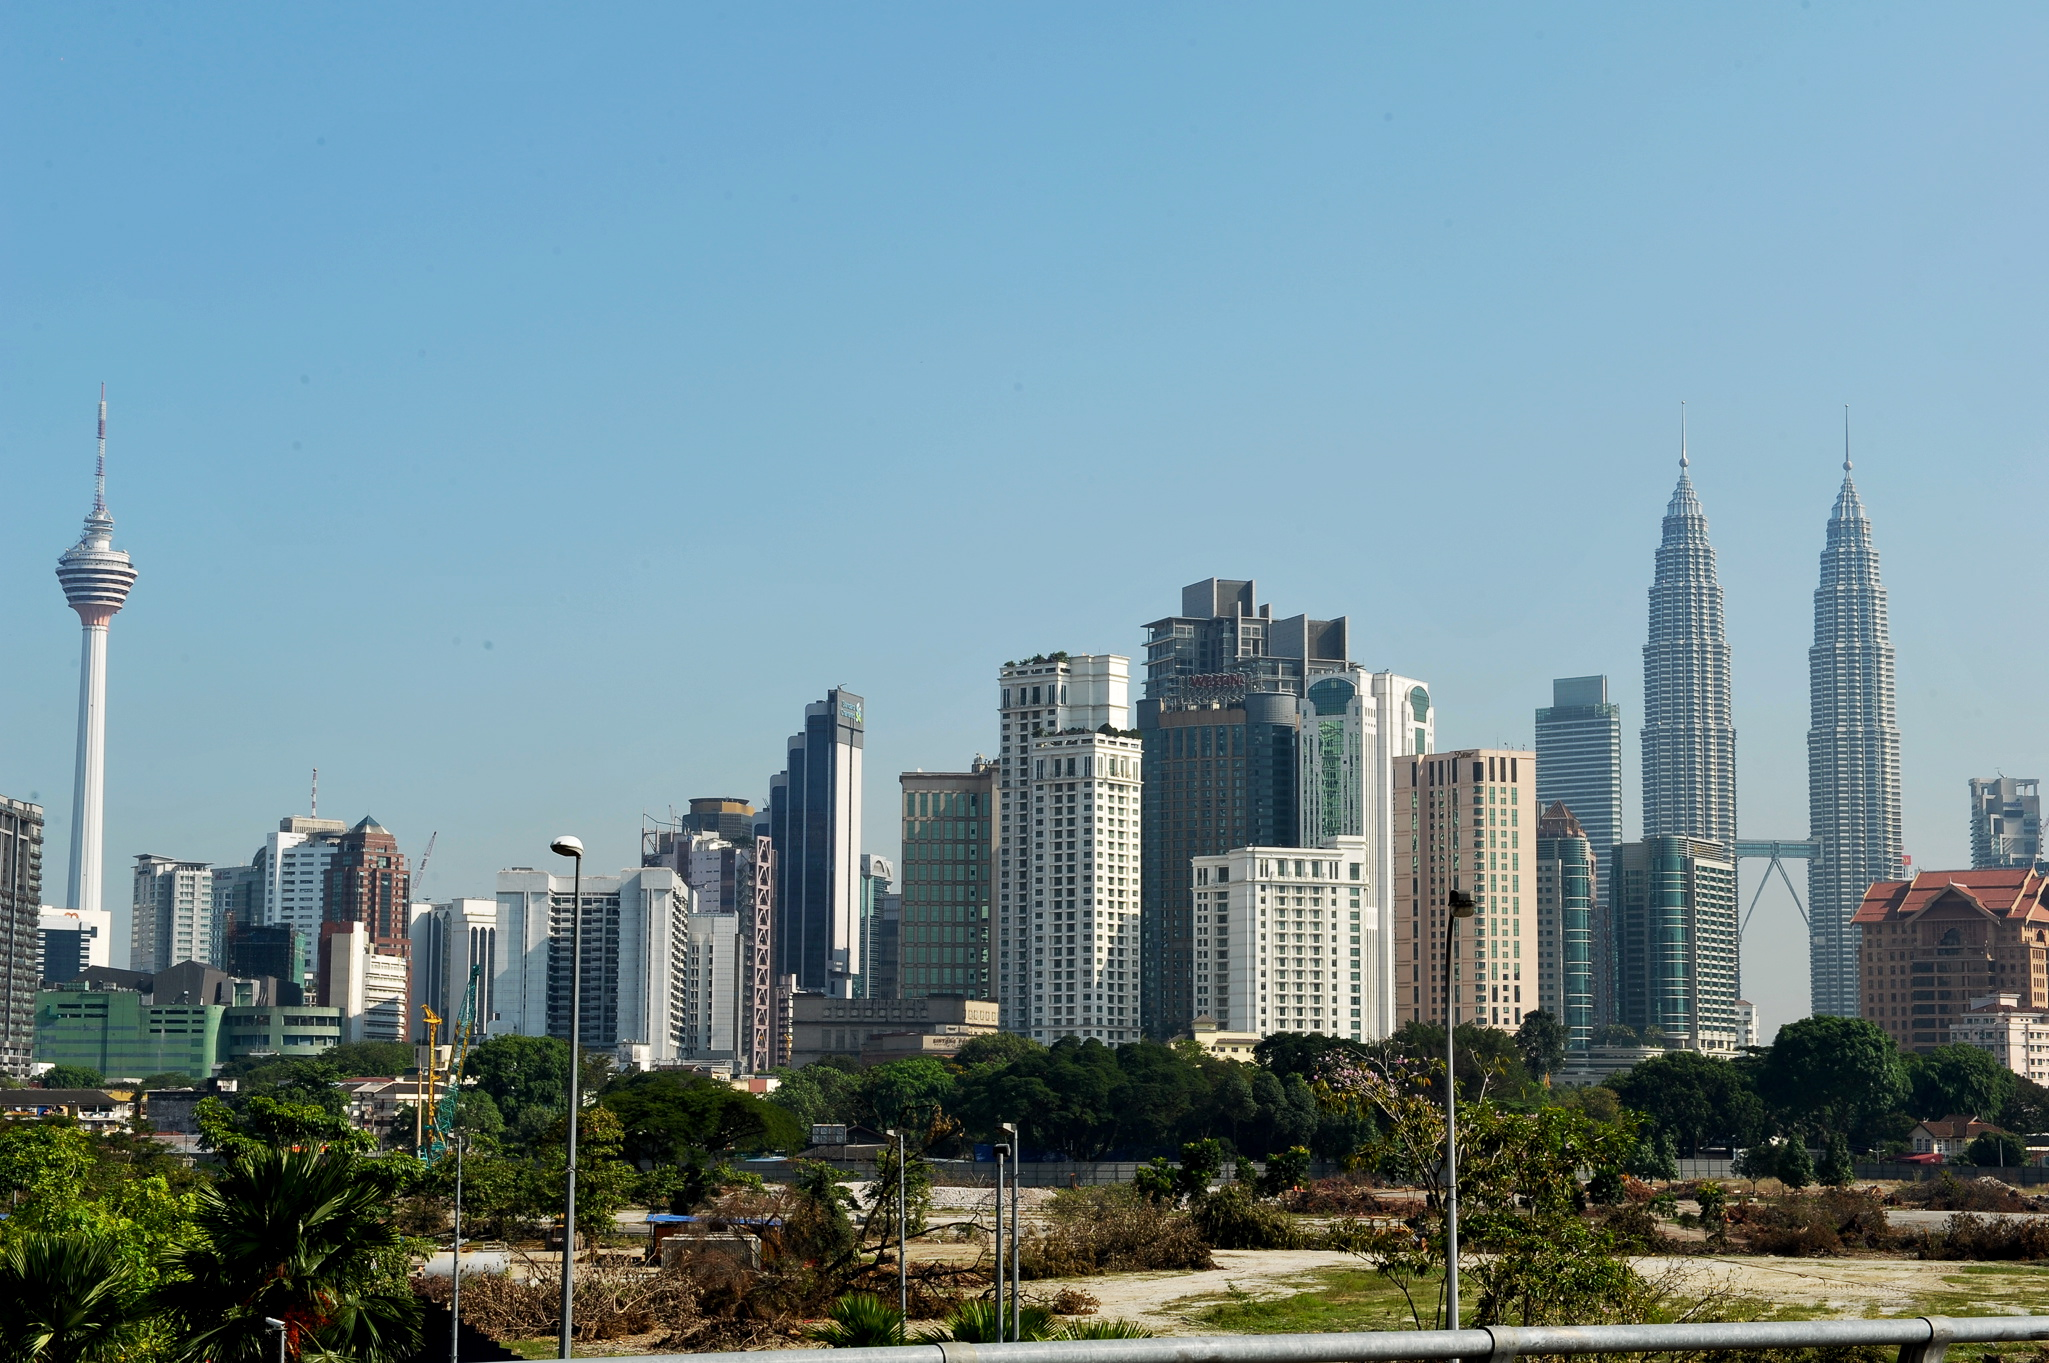 No Entry Of Foreign Workers Into Malaysia, Including Maids, Until Dec 31